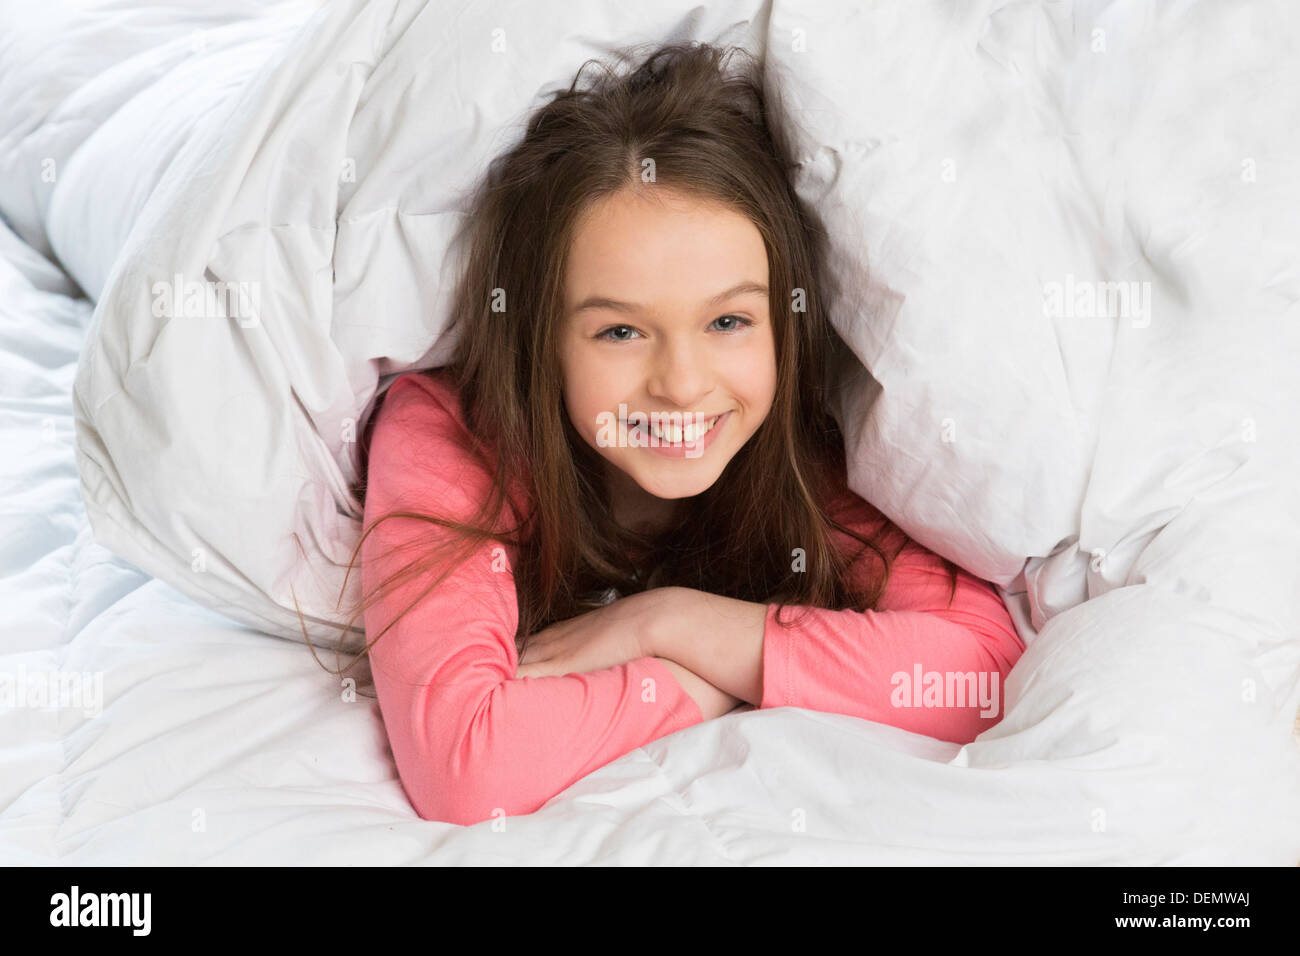 young girl in bed upbeat and smiling Stock Photo